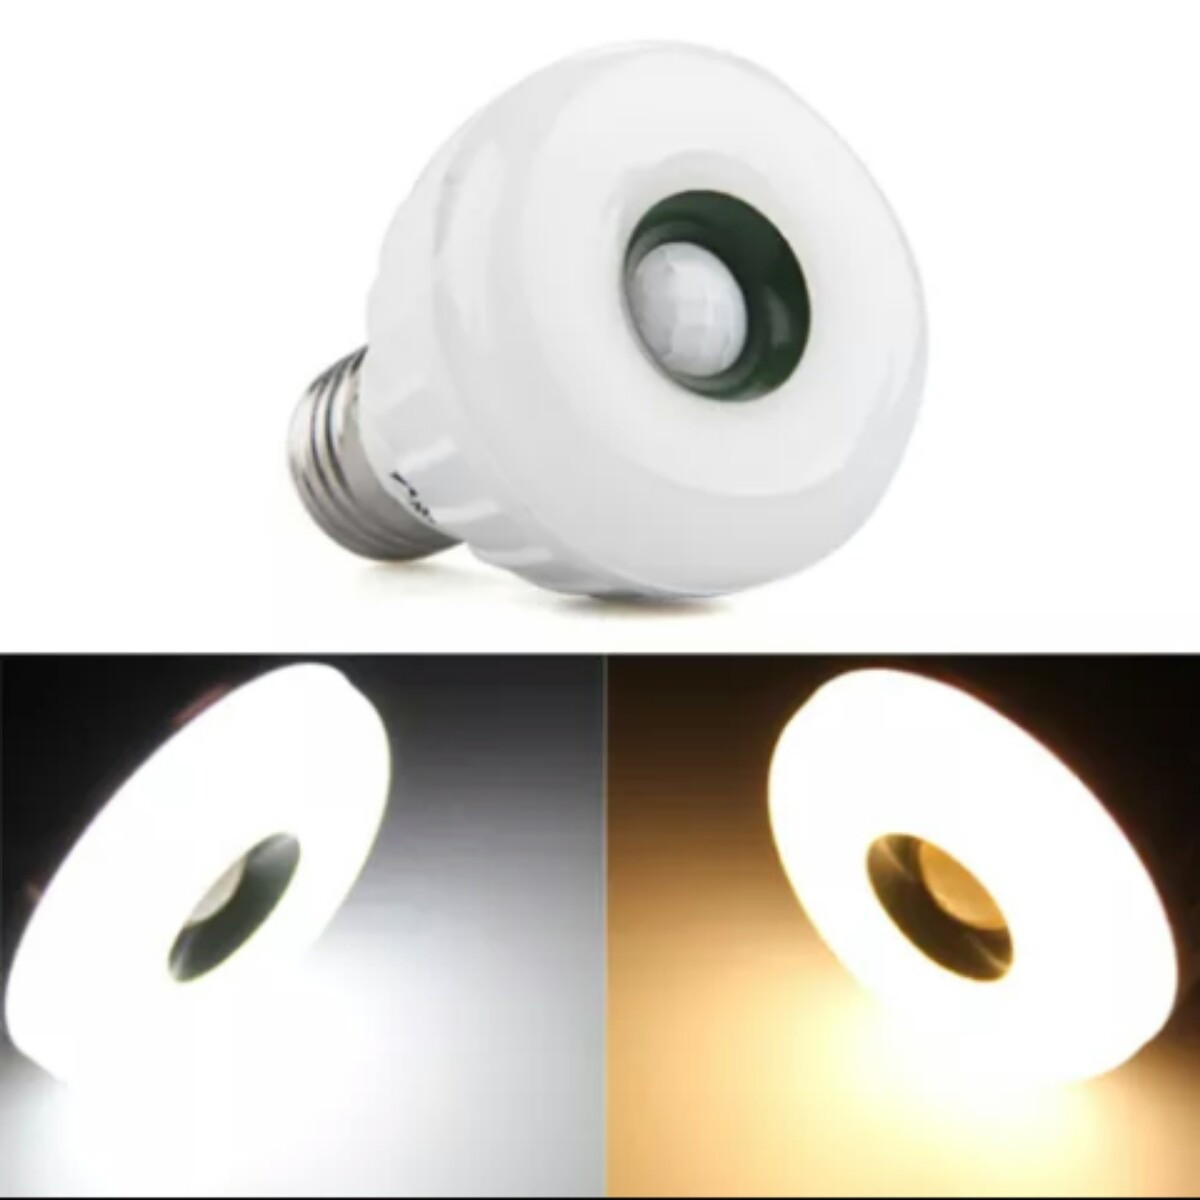 Foco Led Con Sensor De Movimiento Perfecto Foco Ahorrador Led 5w Sensor De Movimiento S 75 00 En Of 42  Magnífica Foco Led Con Sensor De Movimiento